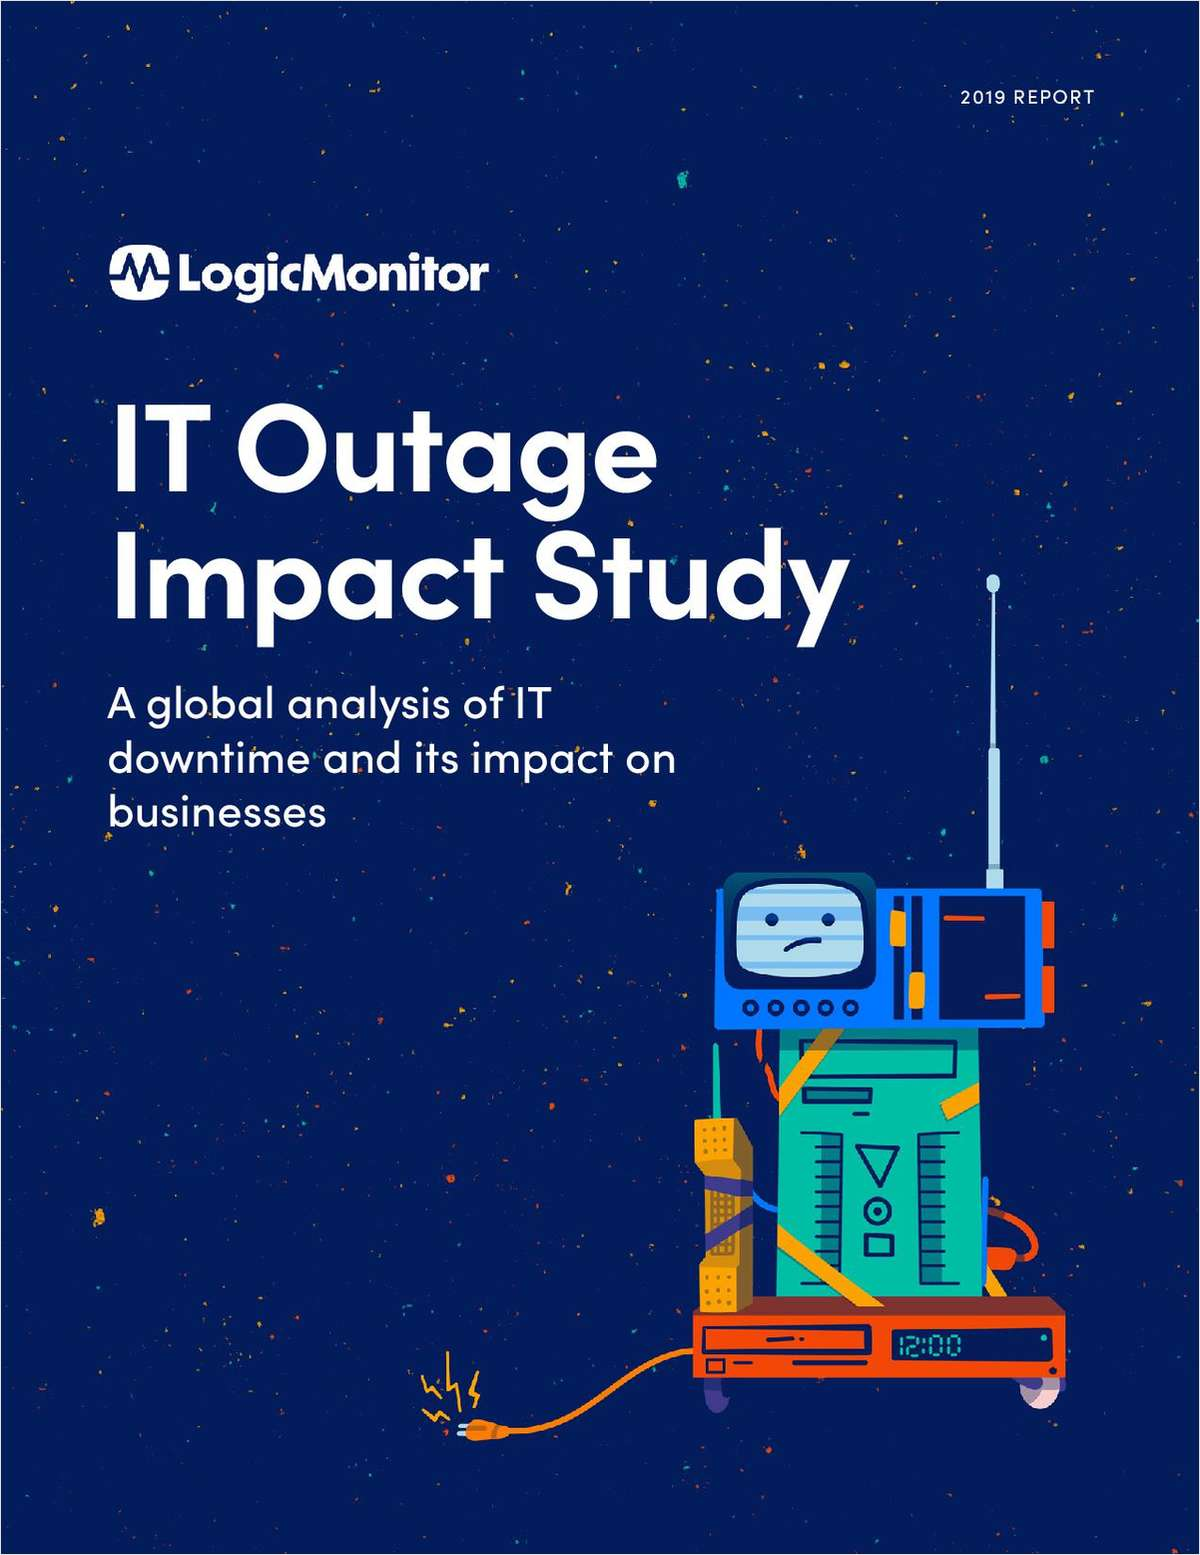 2019 IT Outage Impact Study